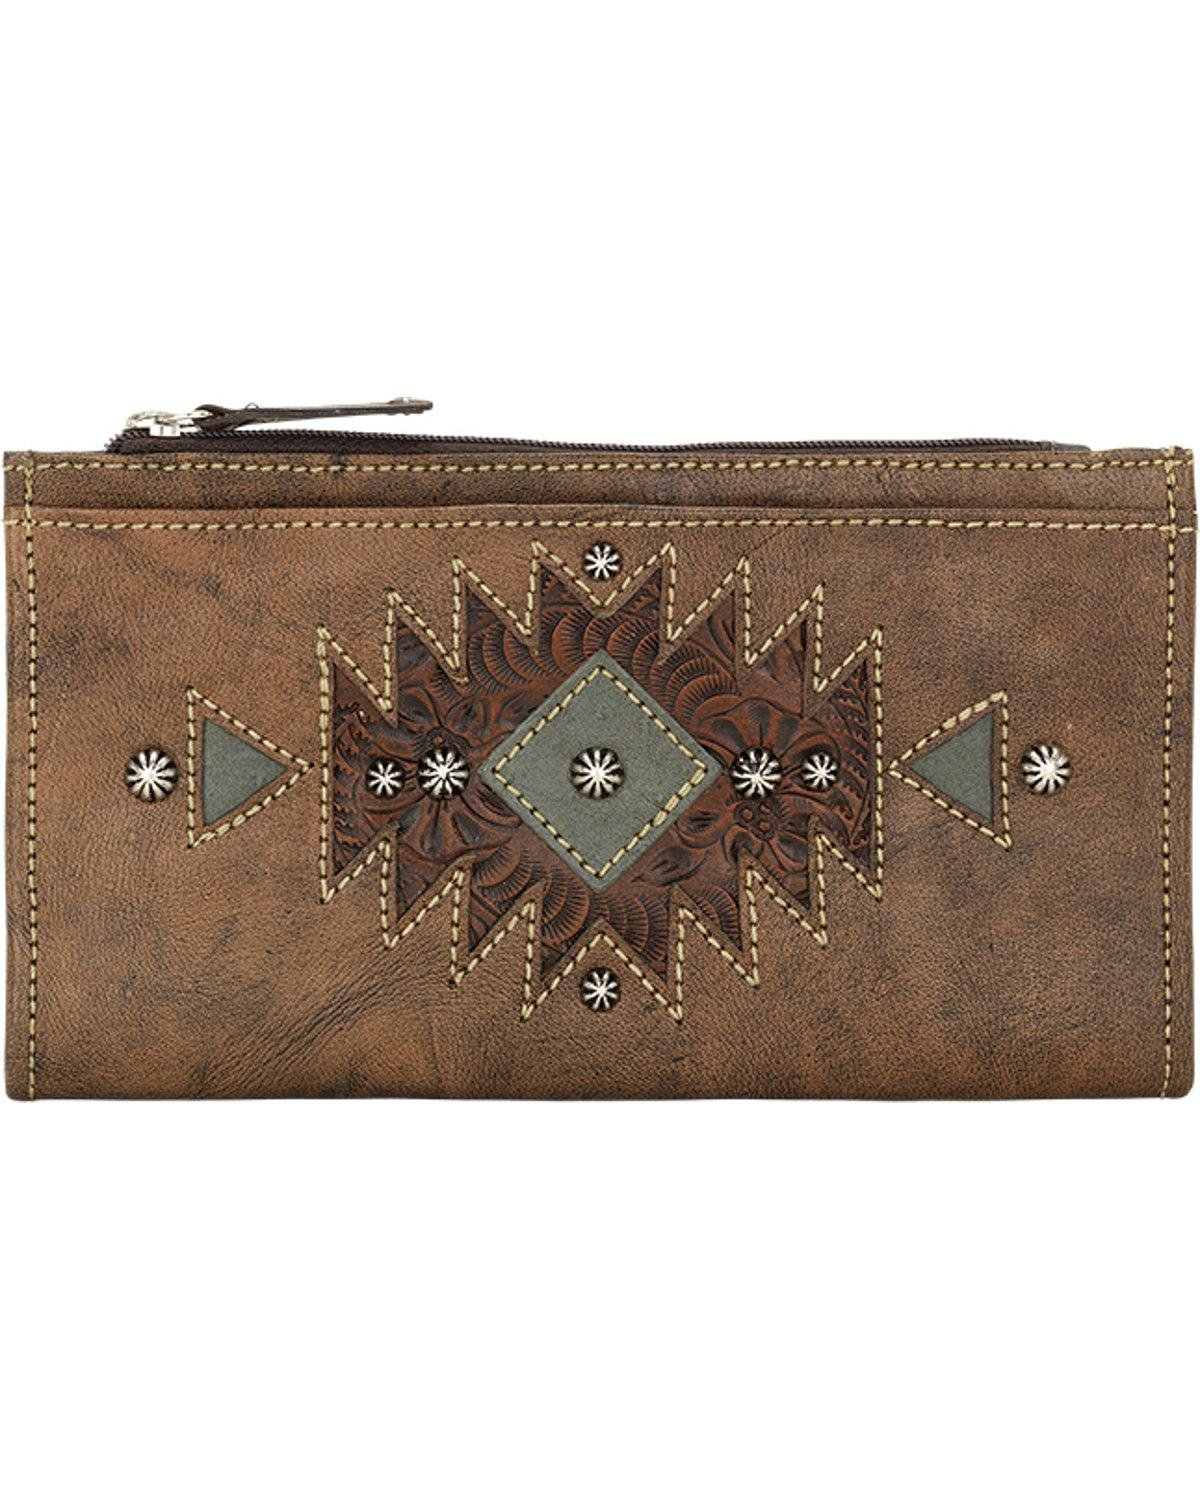 American West Women's Distressed Foldover Snap Closure Wallet Distressed One Size